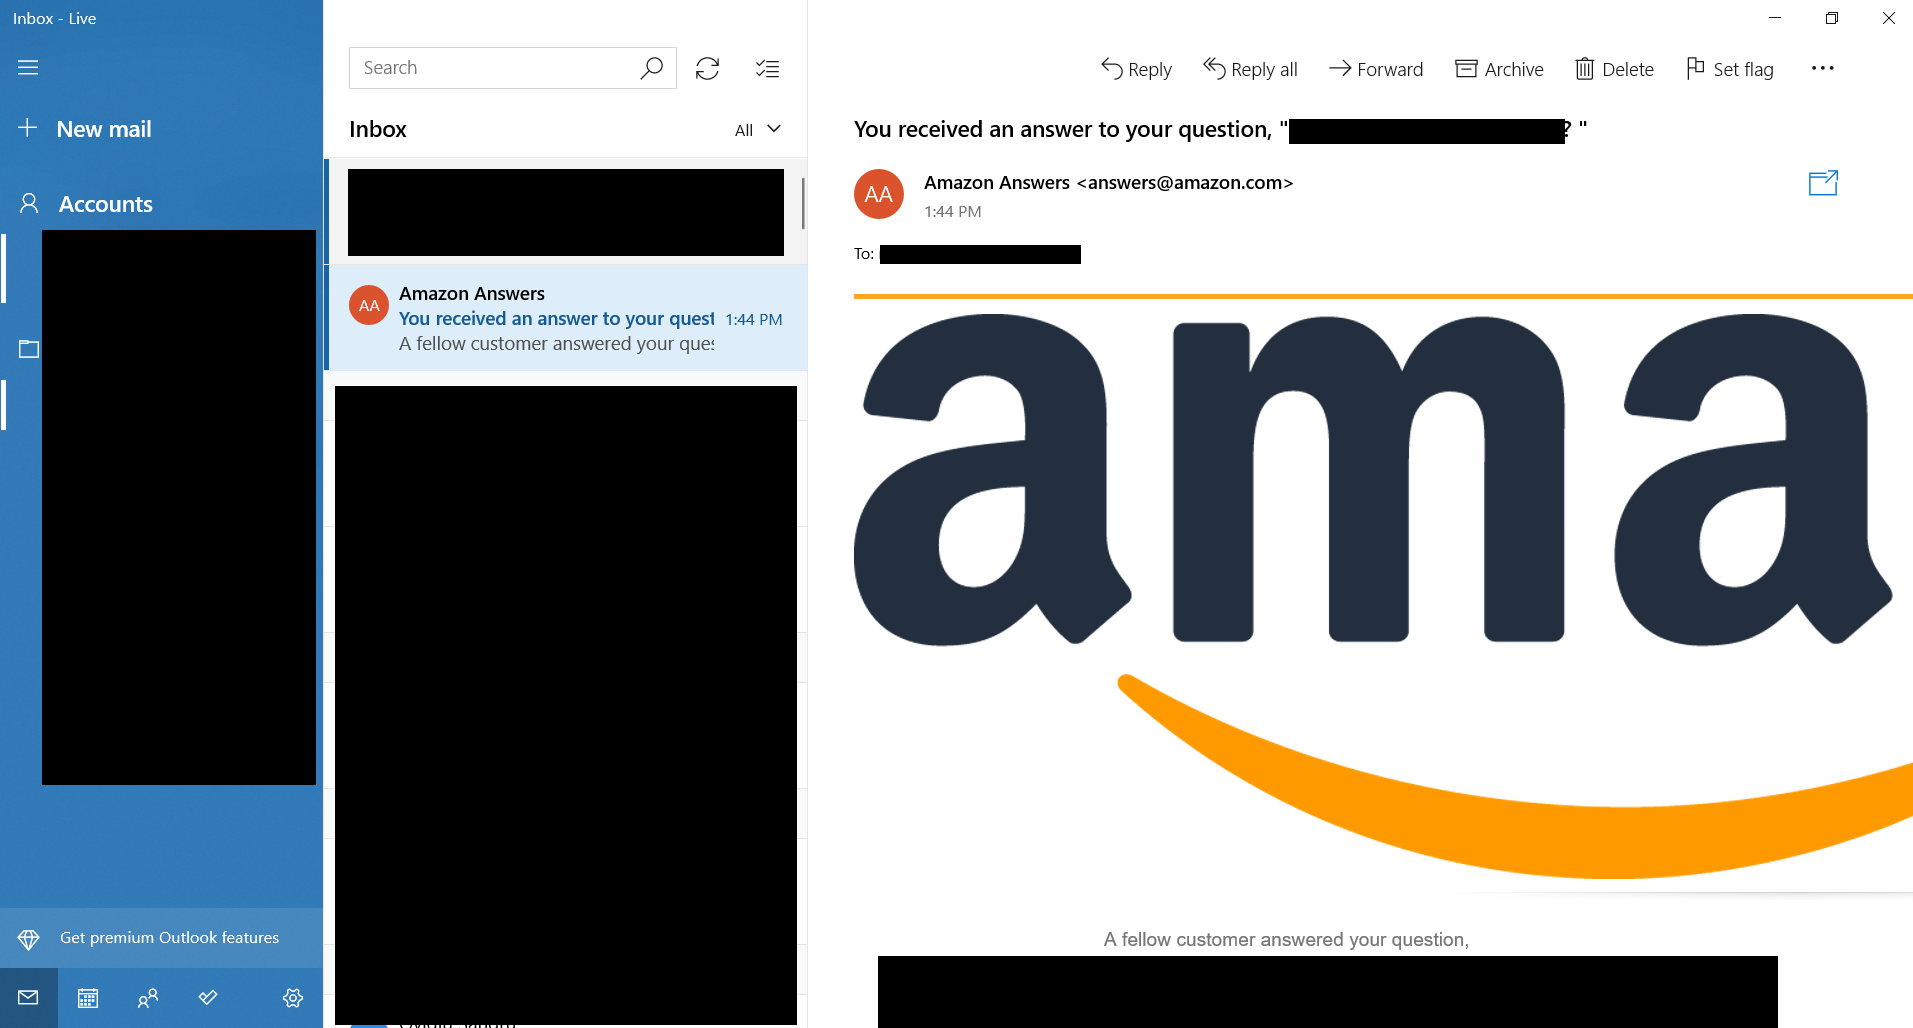 Emails from Amazon are showing a large header image 914796fd-c3fb-4314-a192-a54d6bb1ab5e?upload=true.png